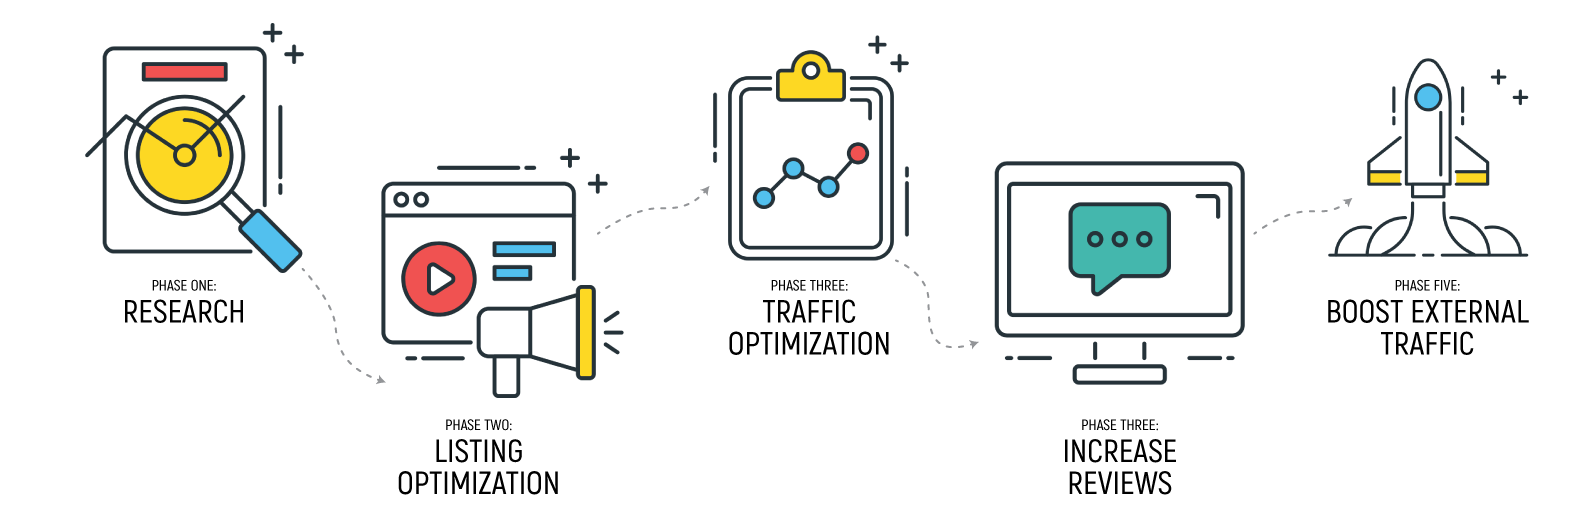 Pinpoint Digital - Amazon Marketing Optimization Process